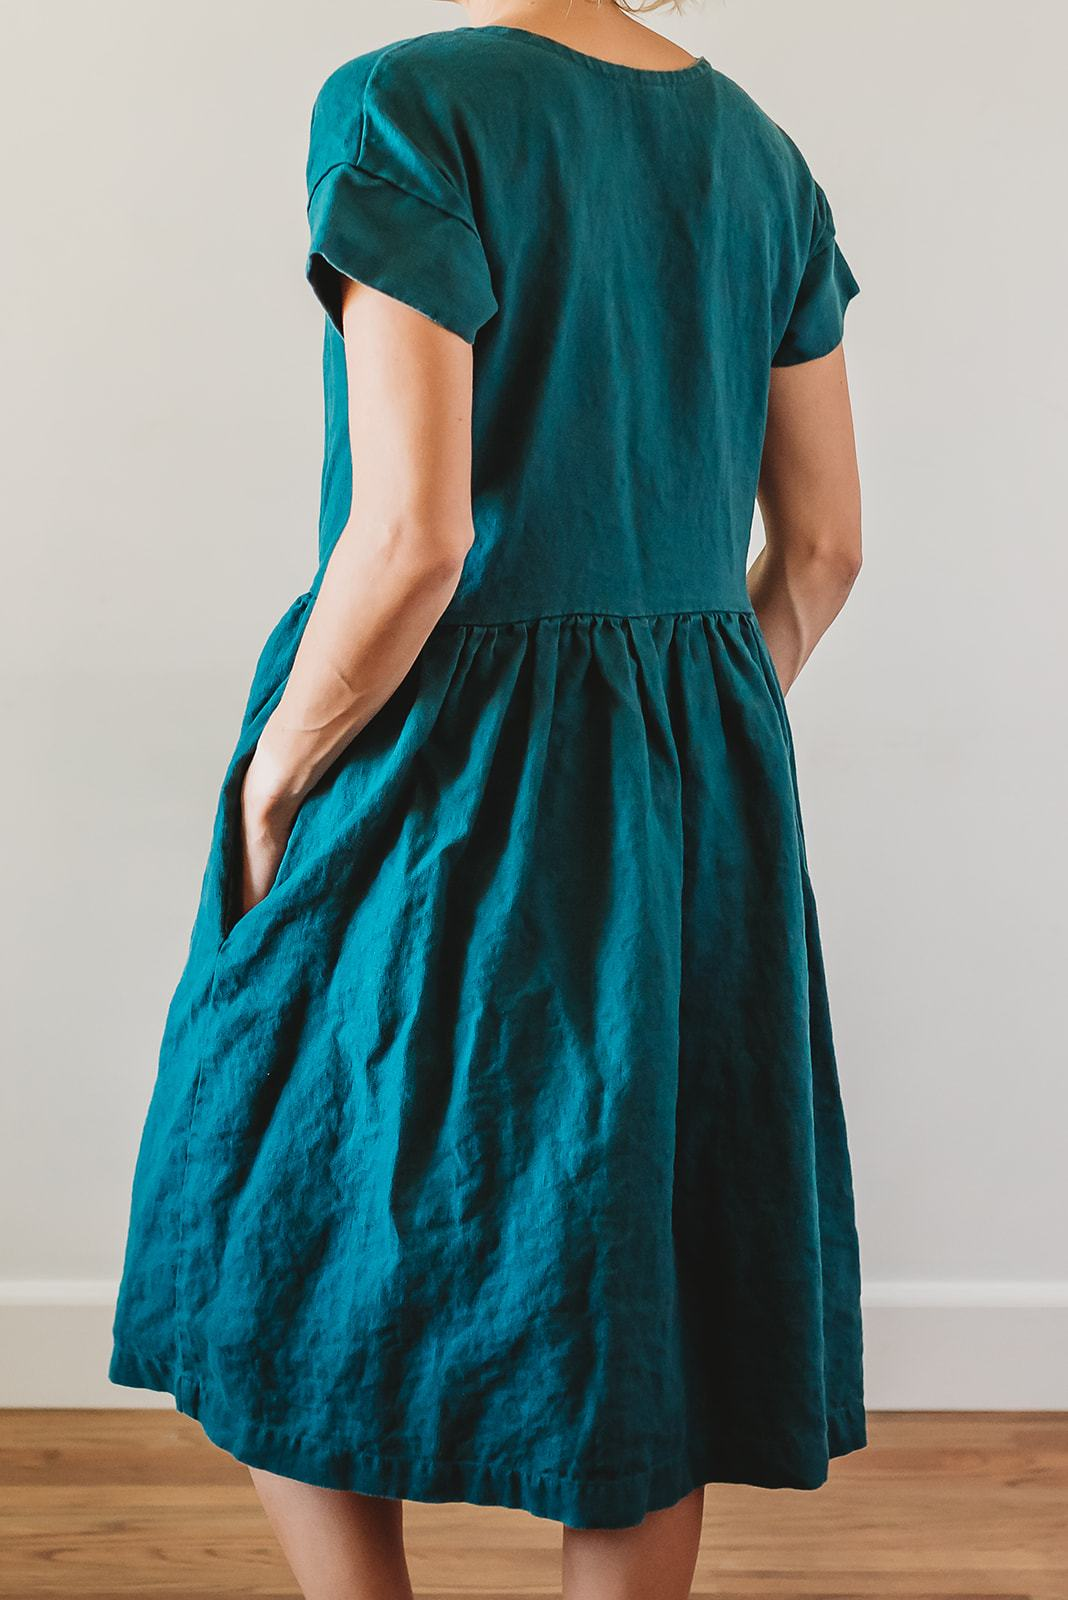 a blue green linen dress with gathered skirt and pockets worn by a model as shown from the back